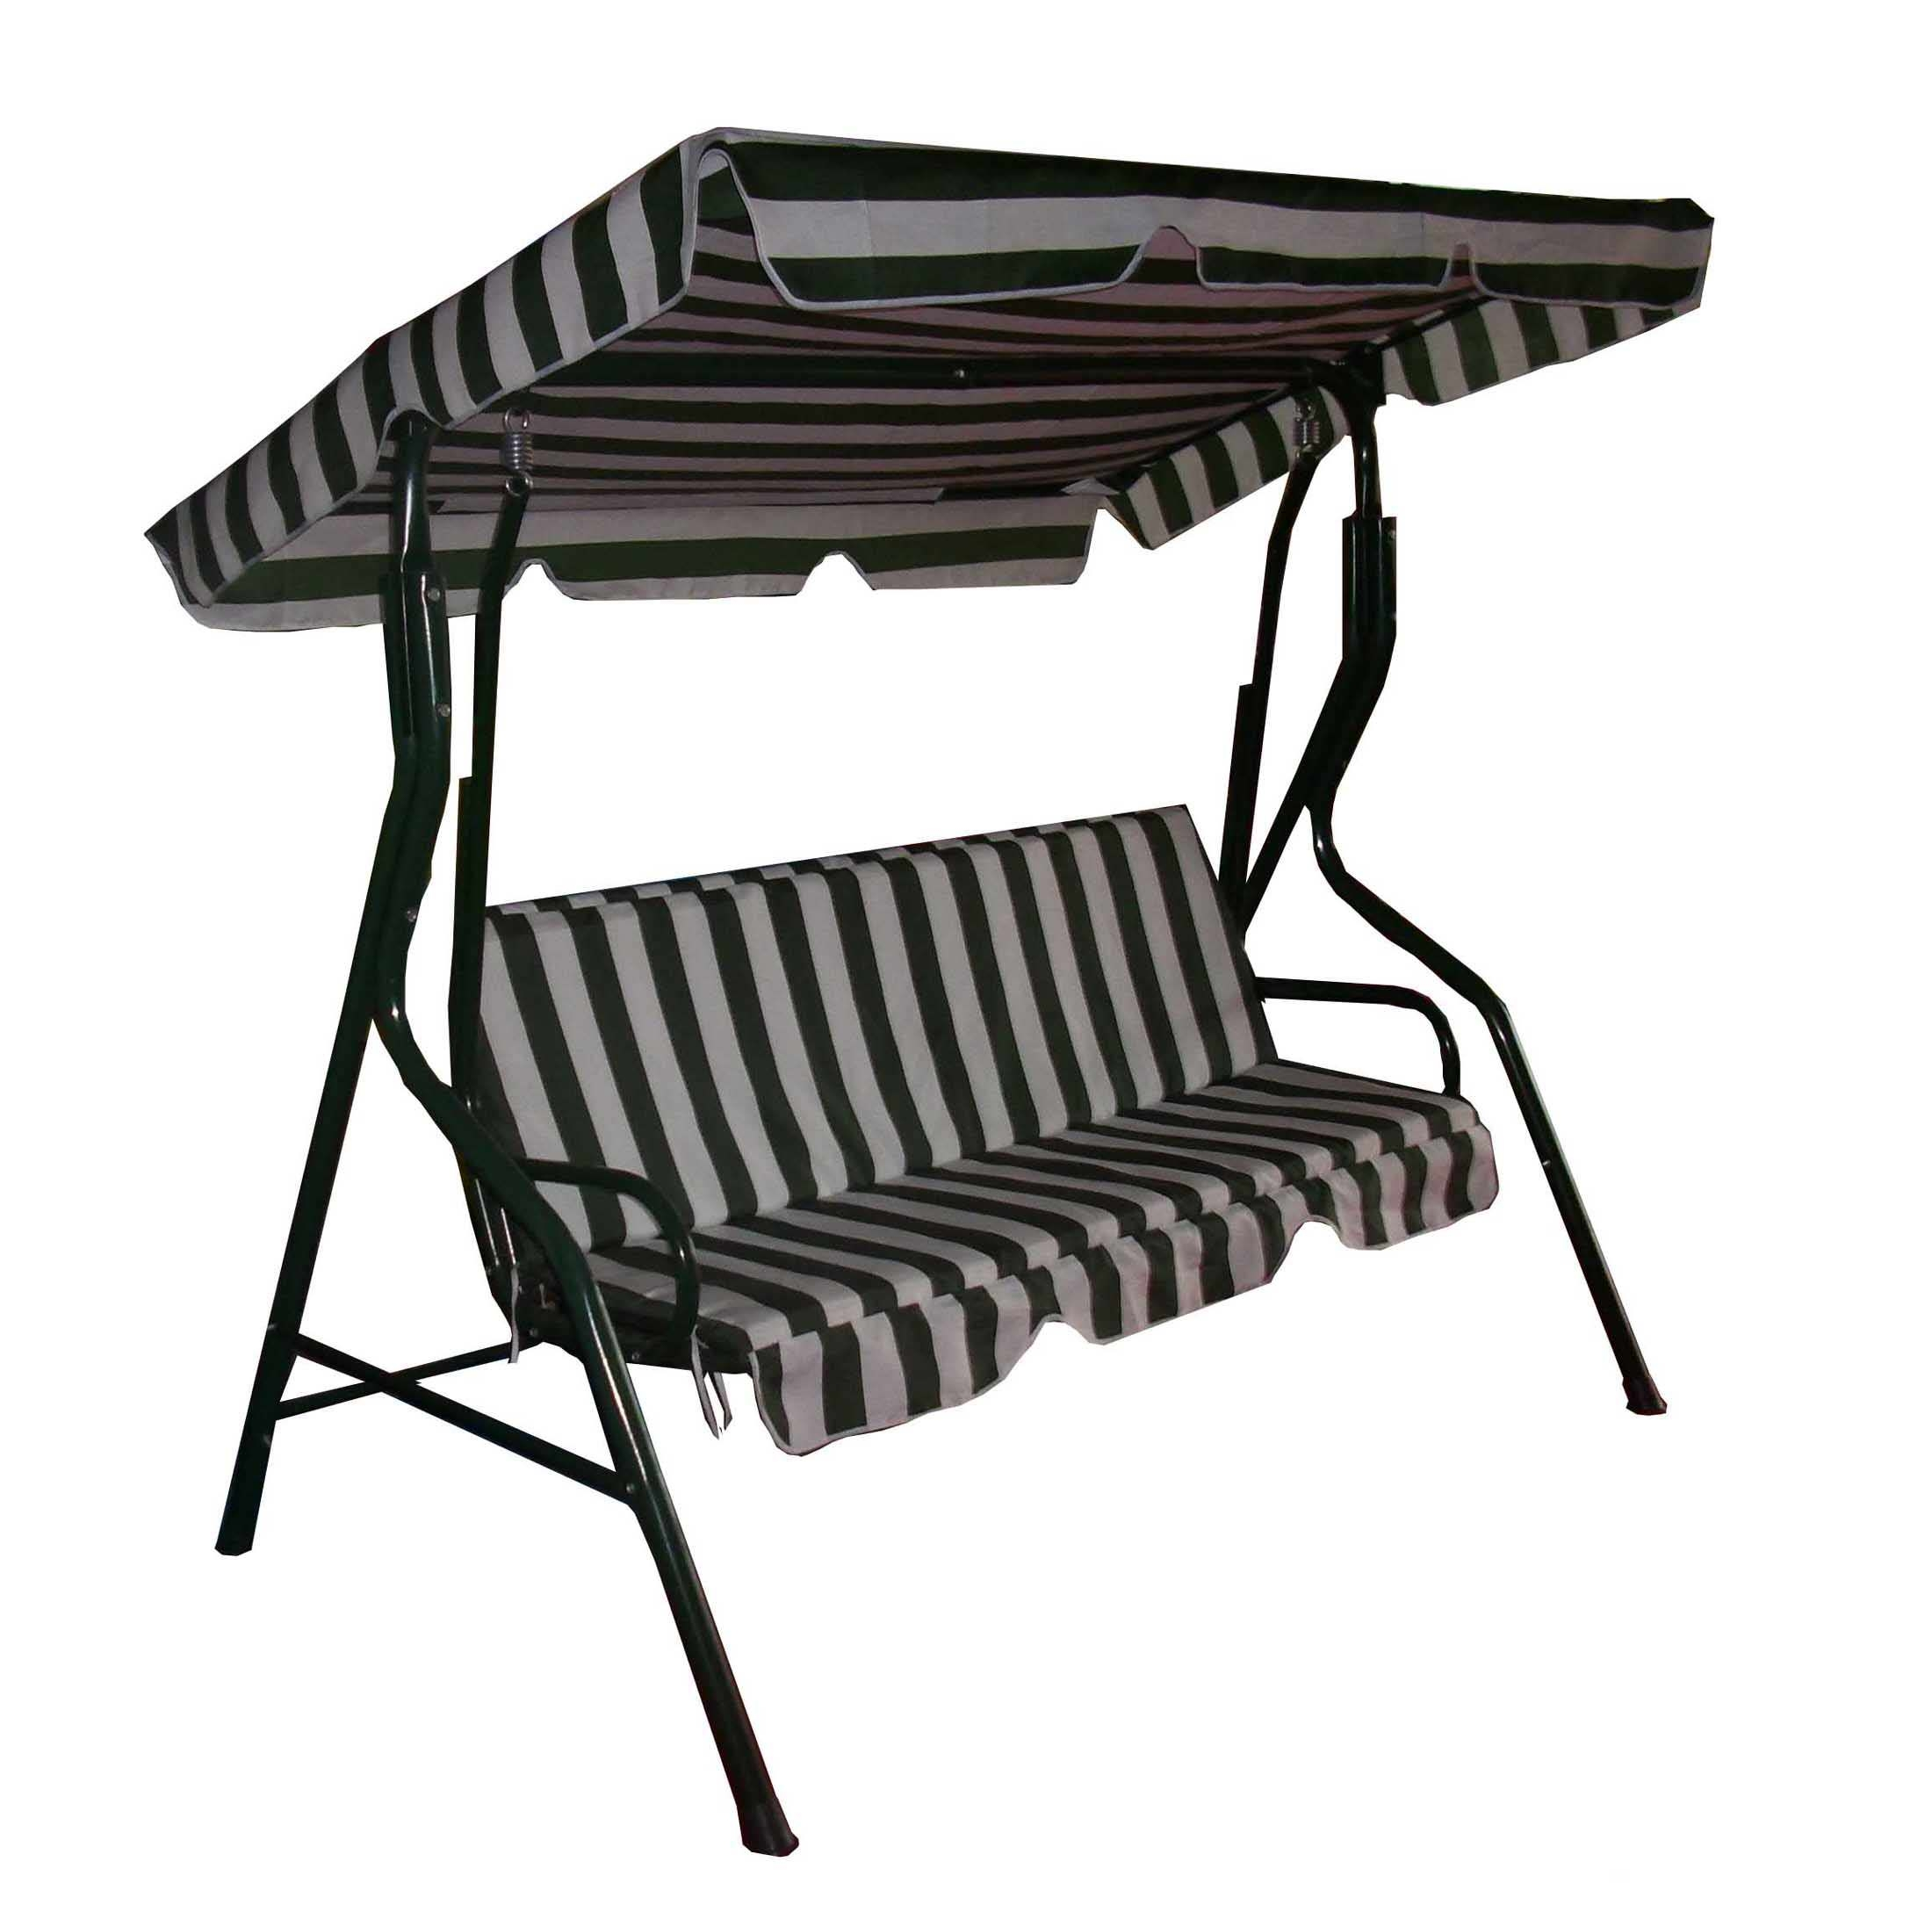 swingasan chair with stripped pattern seat and roof plus black iron legs ideas